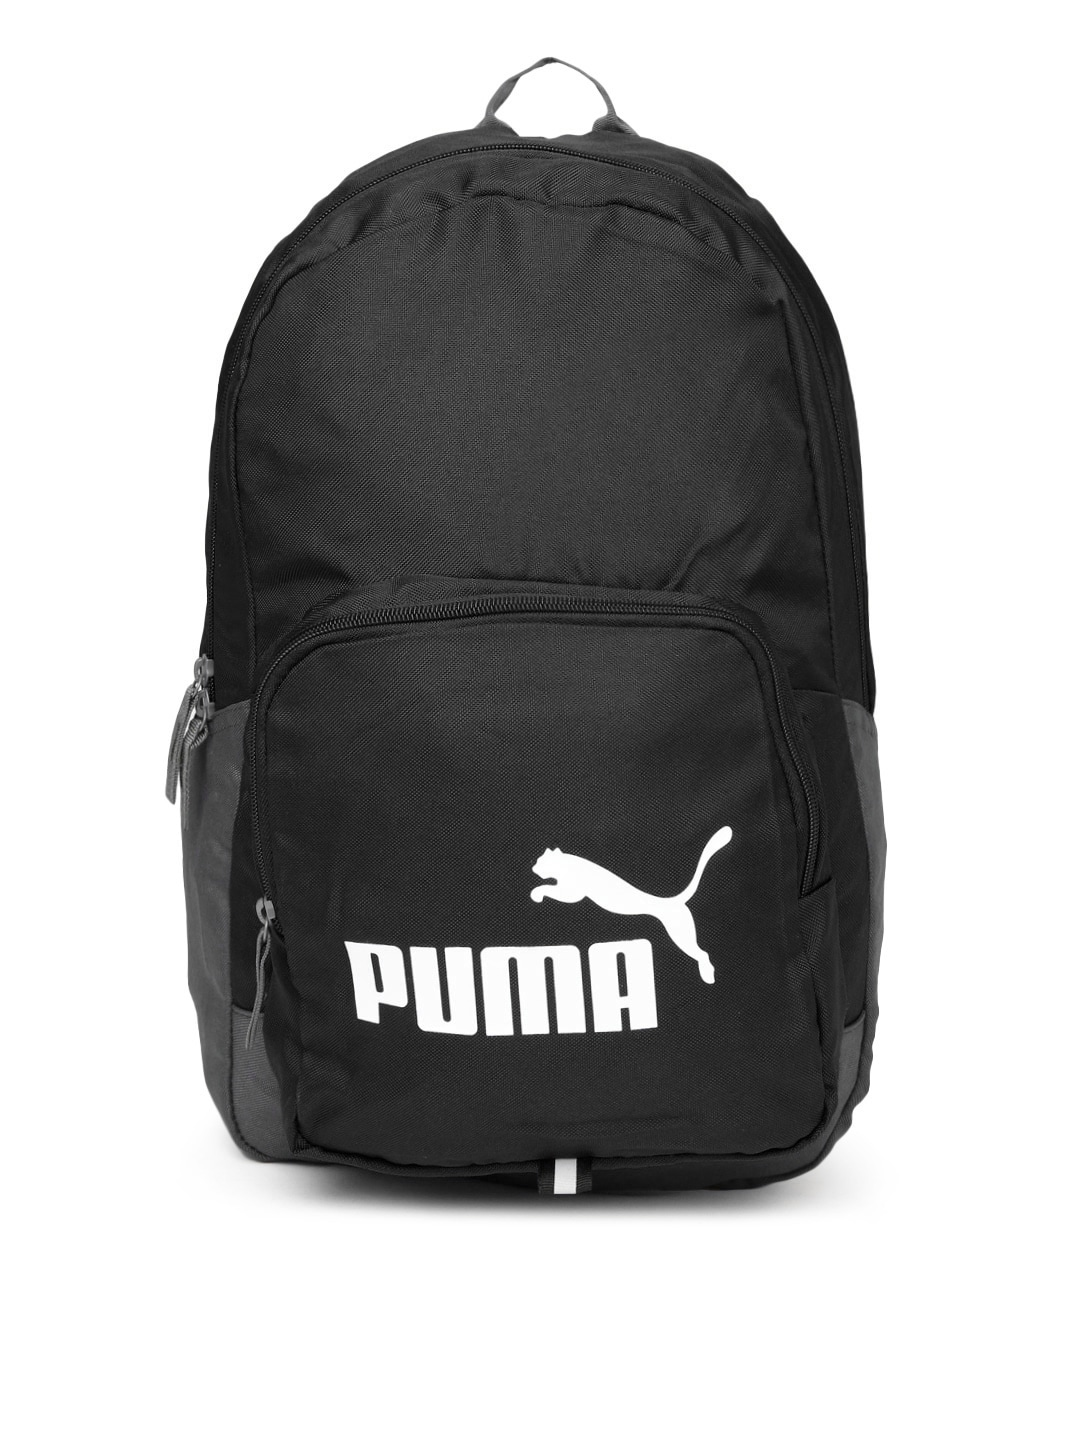 0e81b7a9d0 Puma Backpacks - Buy Puma Backpack For Men   Women Online